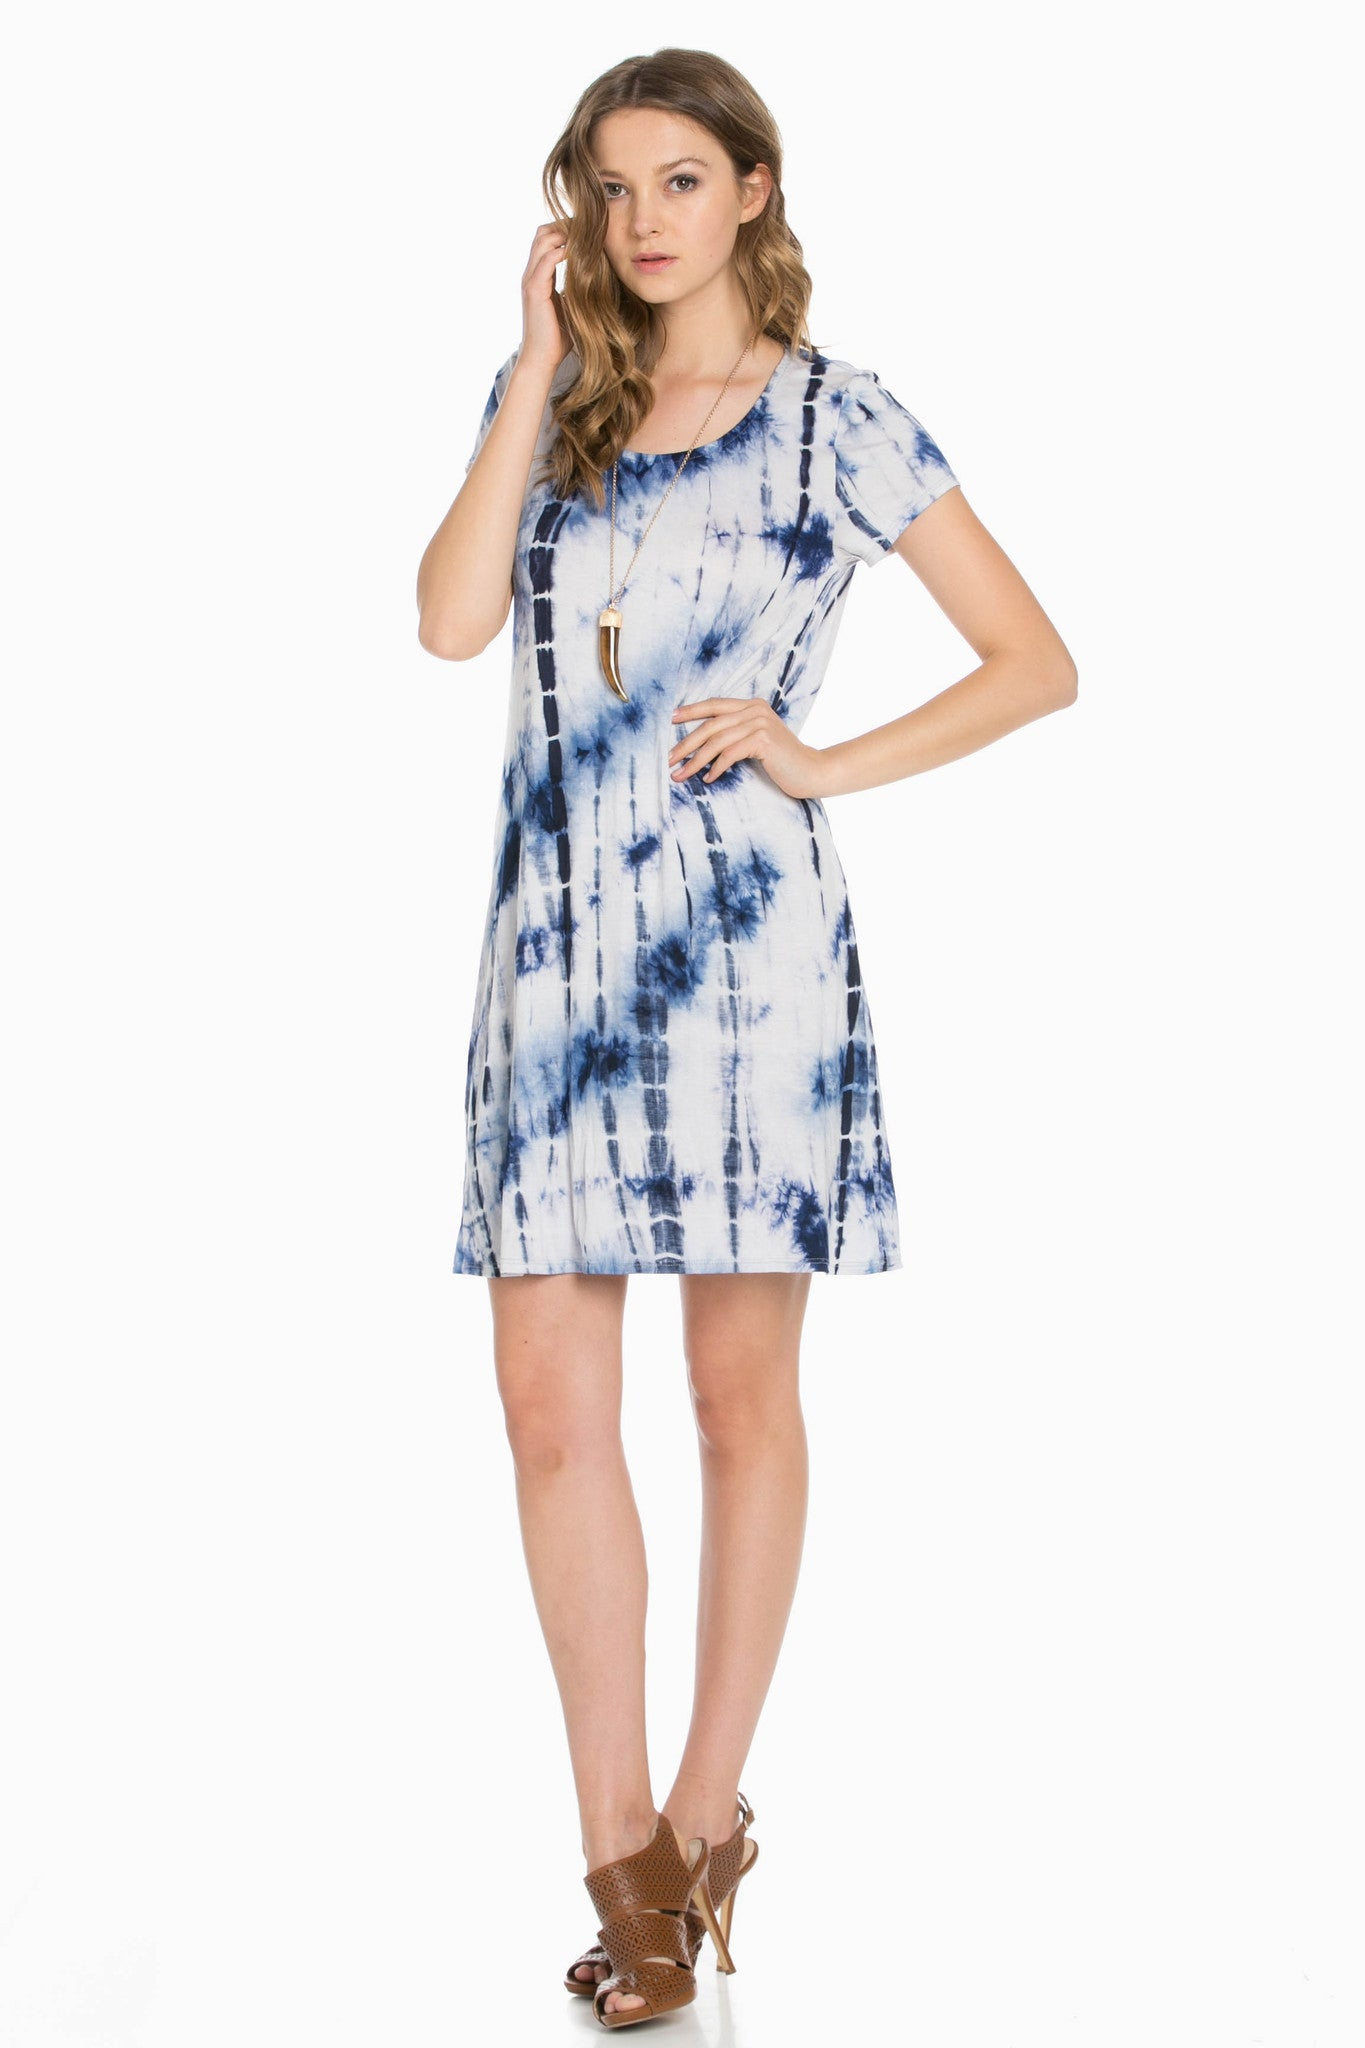 Open Back Blue Tie Dye Dress - Dresses - My Yuccie - 3